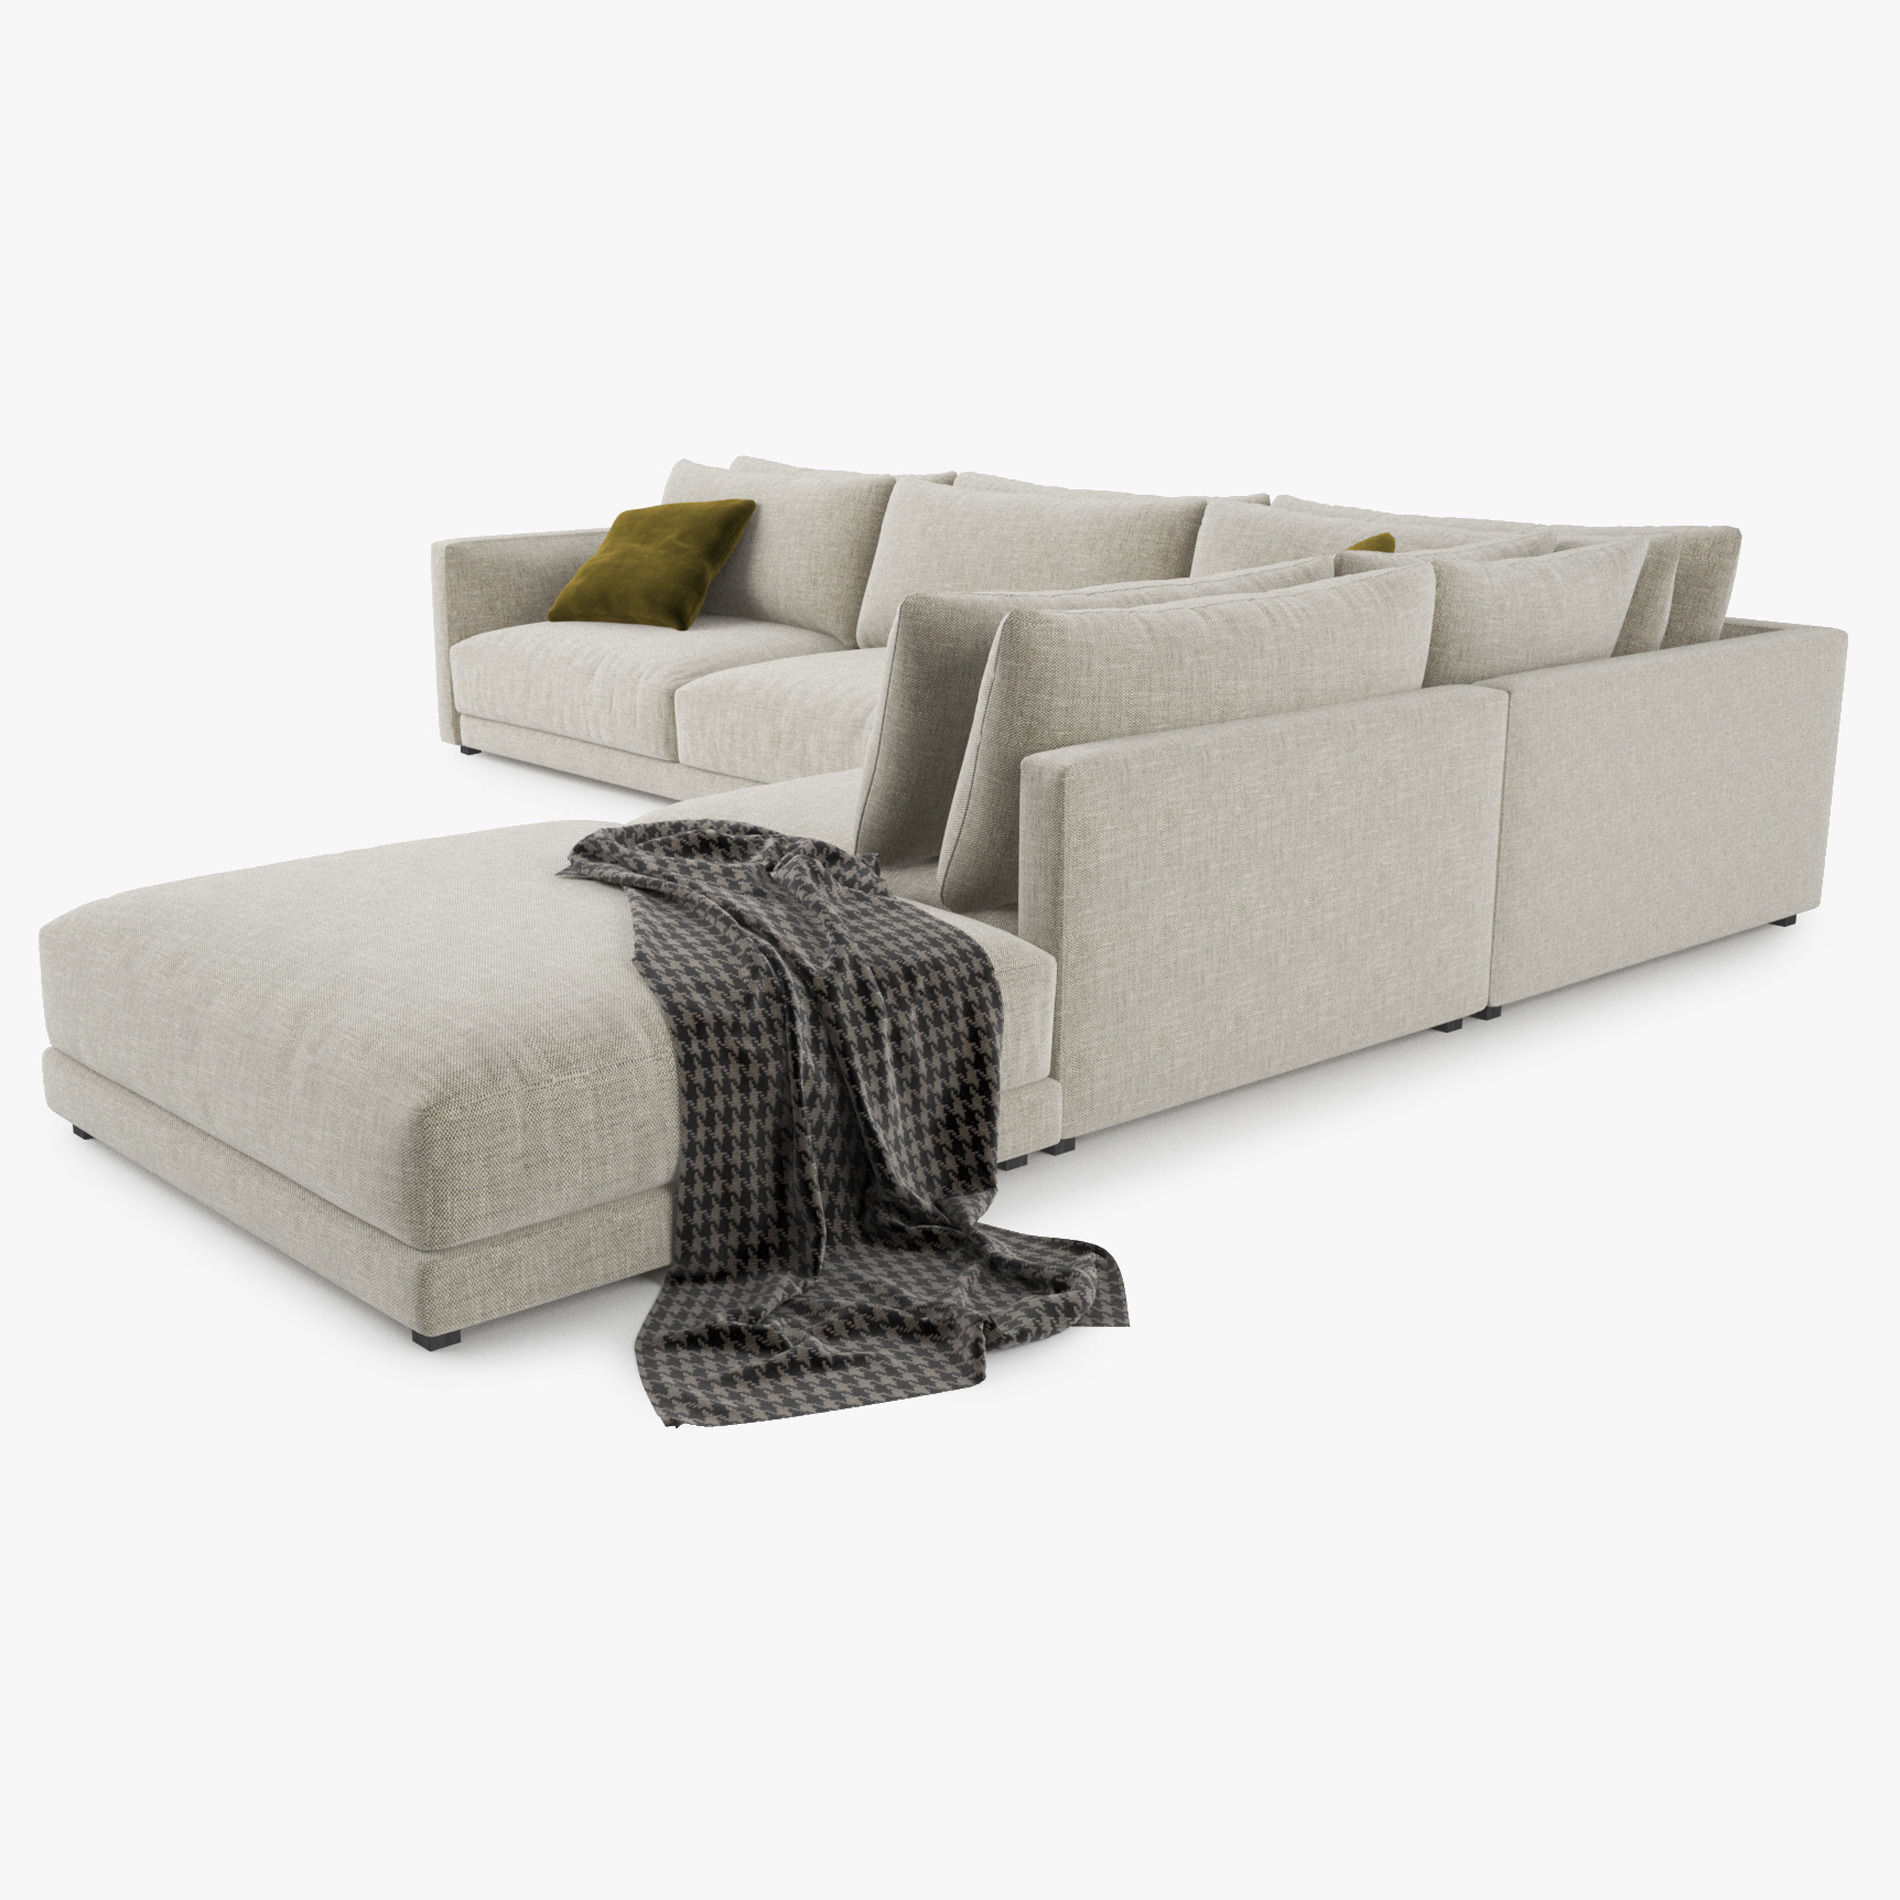 Poliform bristol sofa 3d model 3d model max obj 3ds fbx for Sofa 3d model